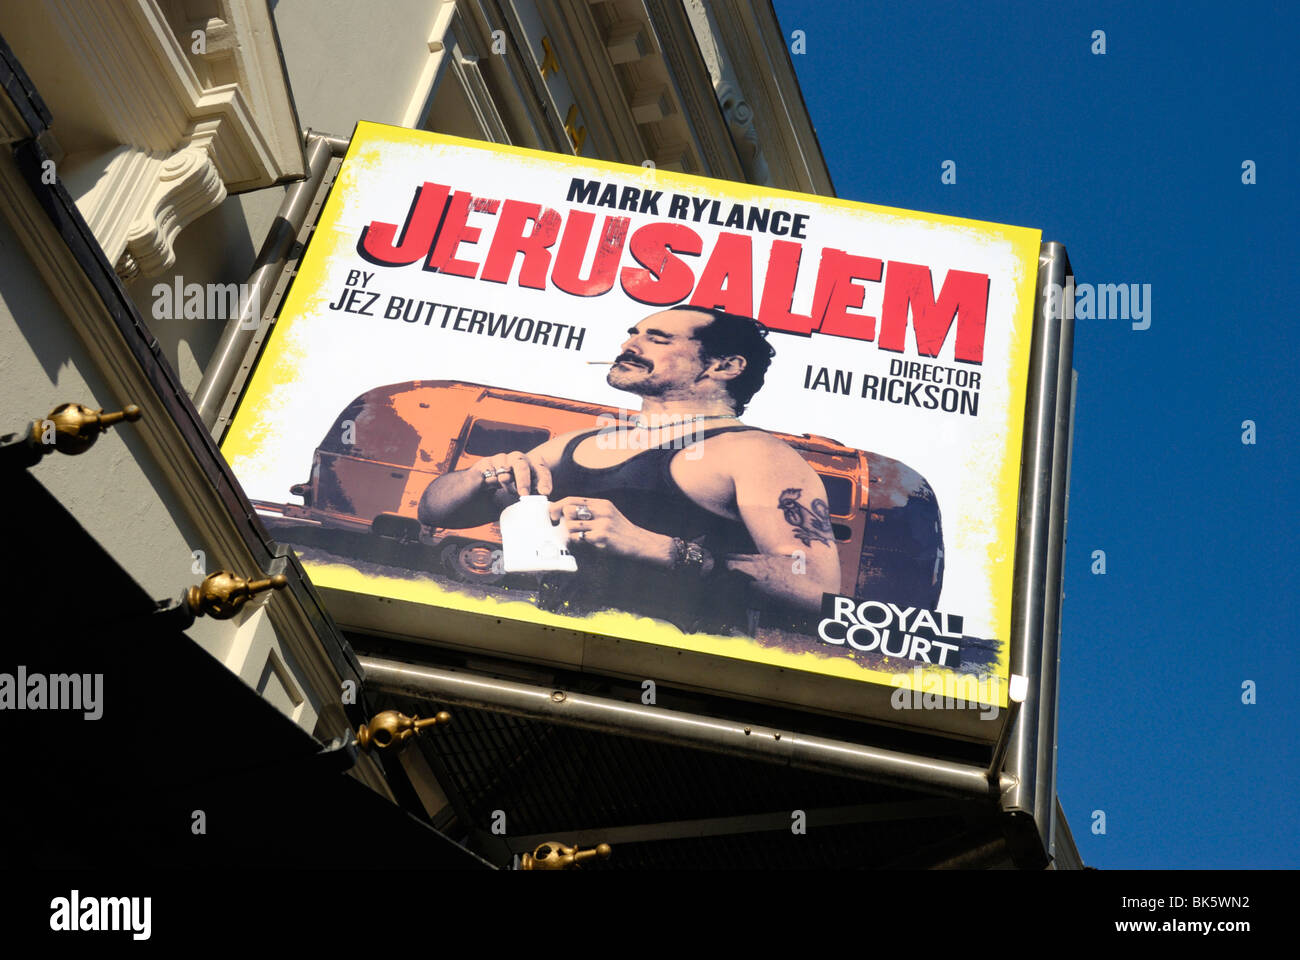 Billboard advertising the play JERUSALUM outside the Apollo Theatre in Shaftesbury Avenue, London, England - Stock Image